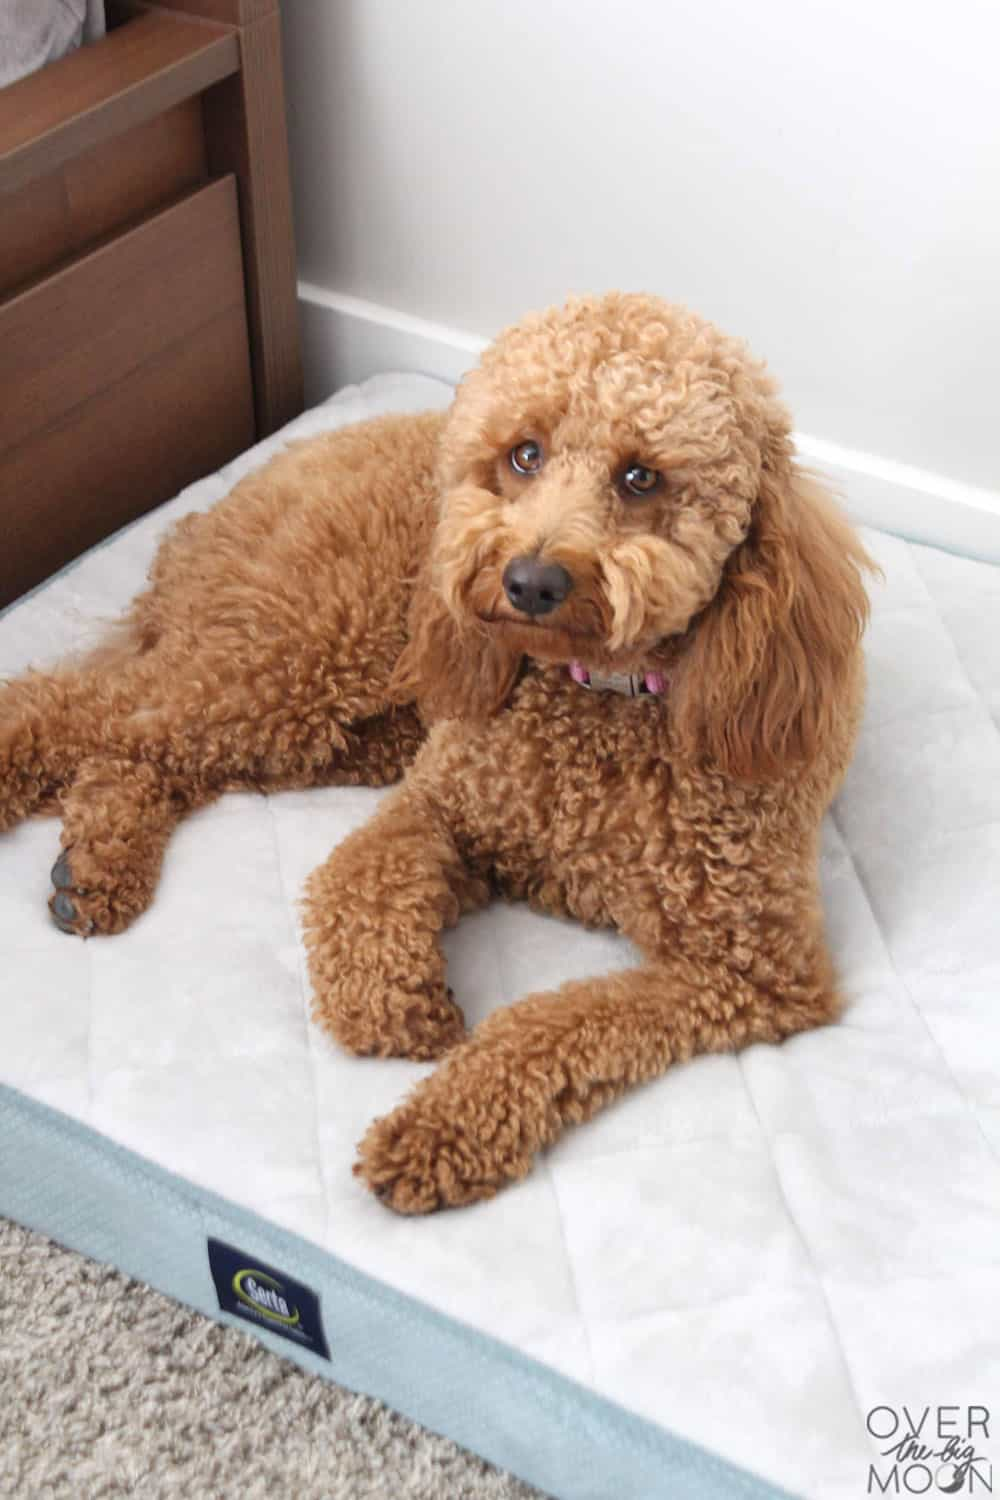 Add an area for the dog in a kids bedroom! From overthebigmoon.com!